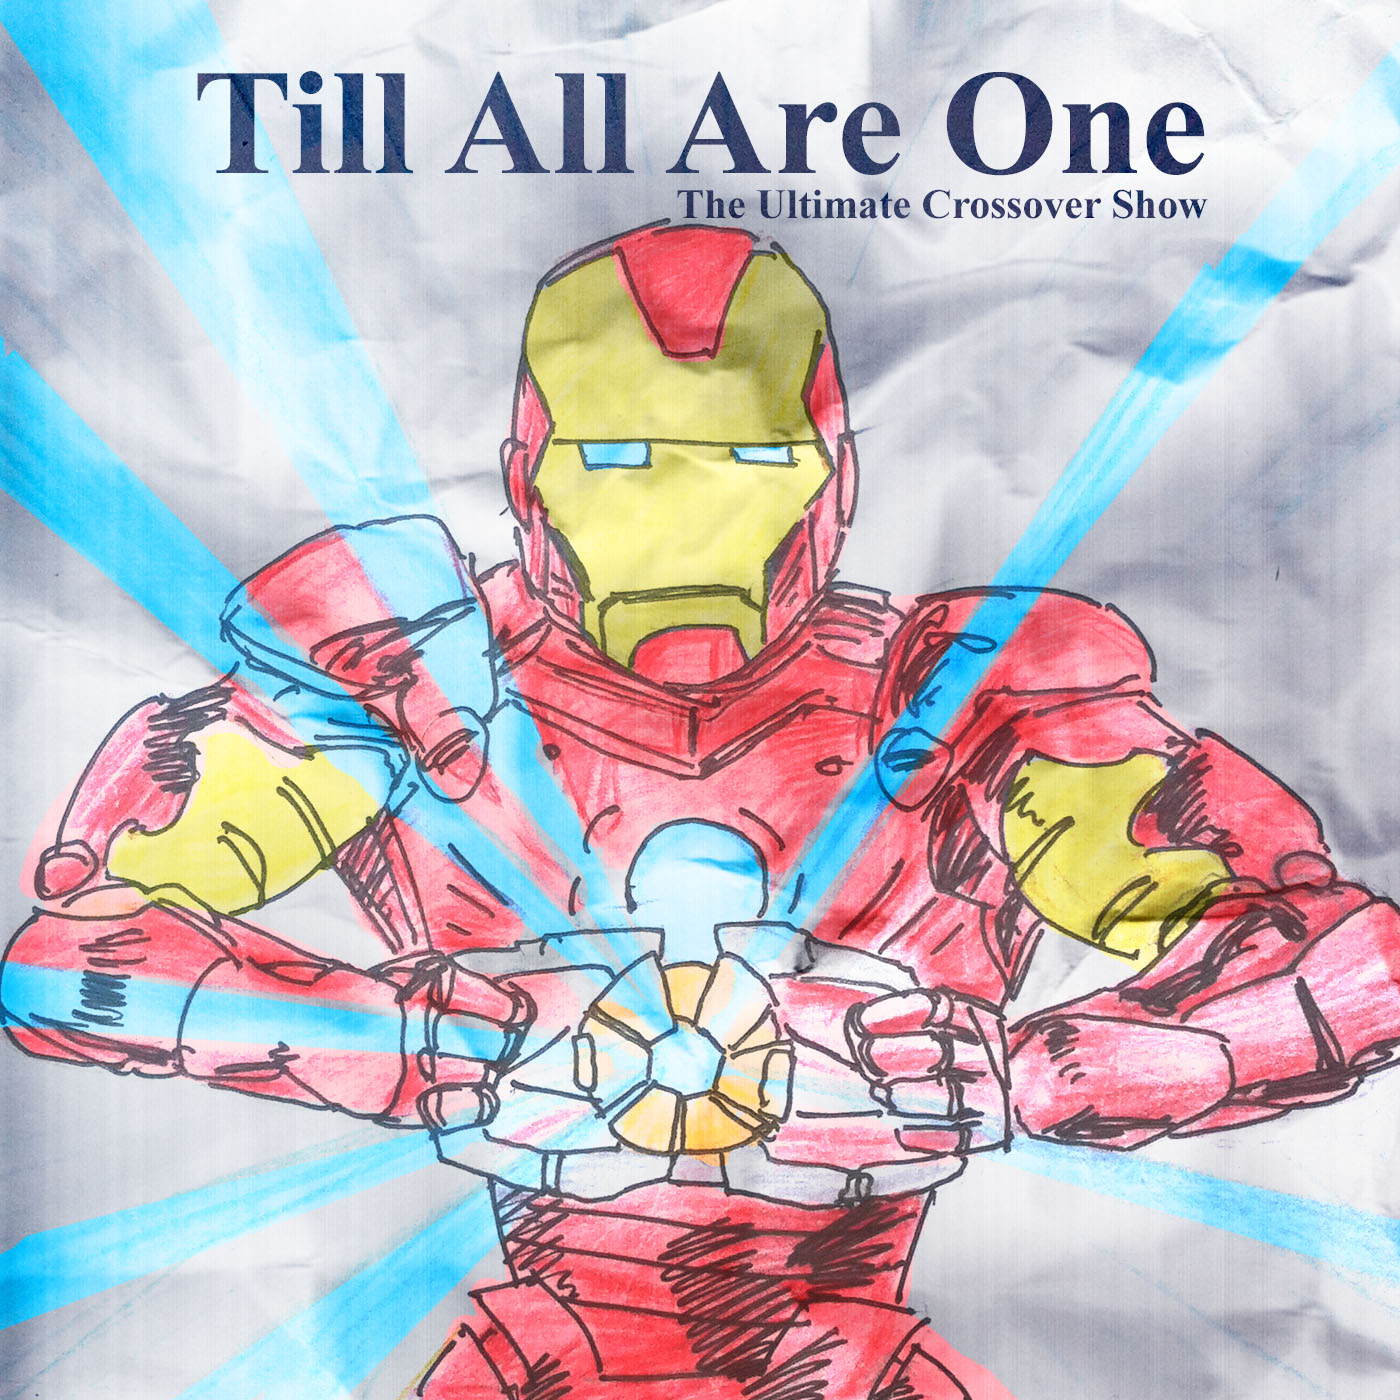 Till All Are One